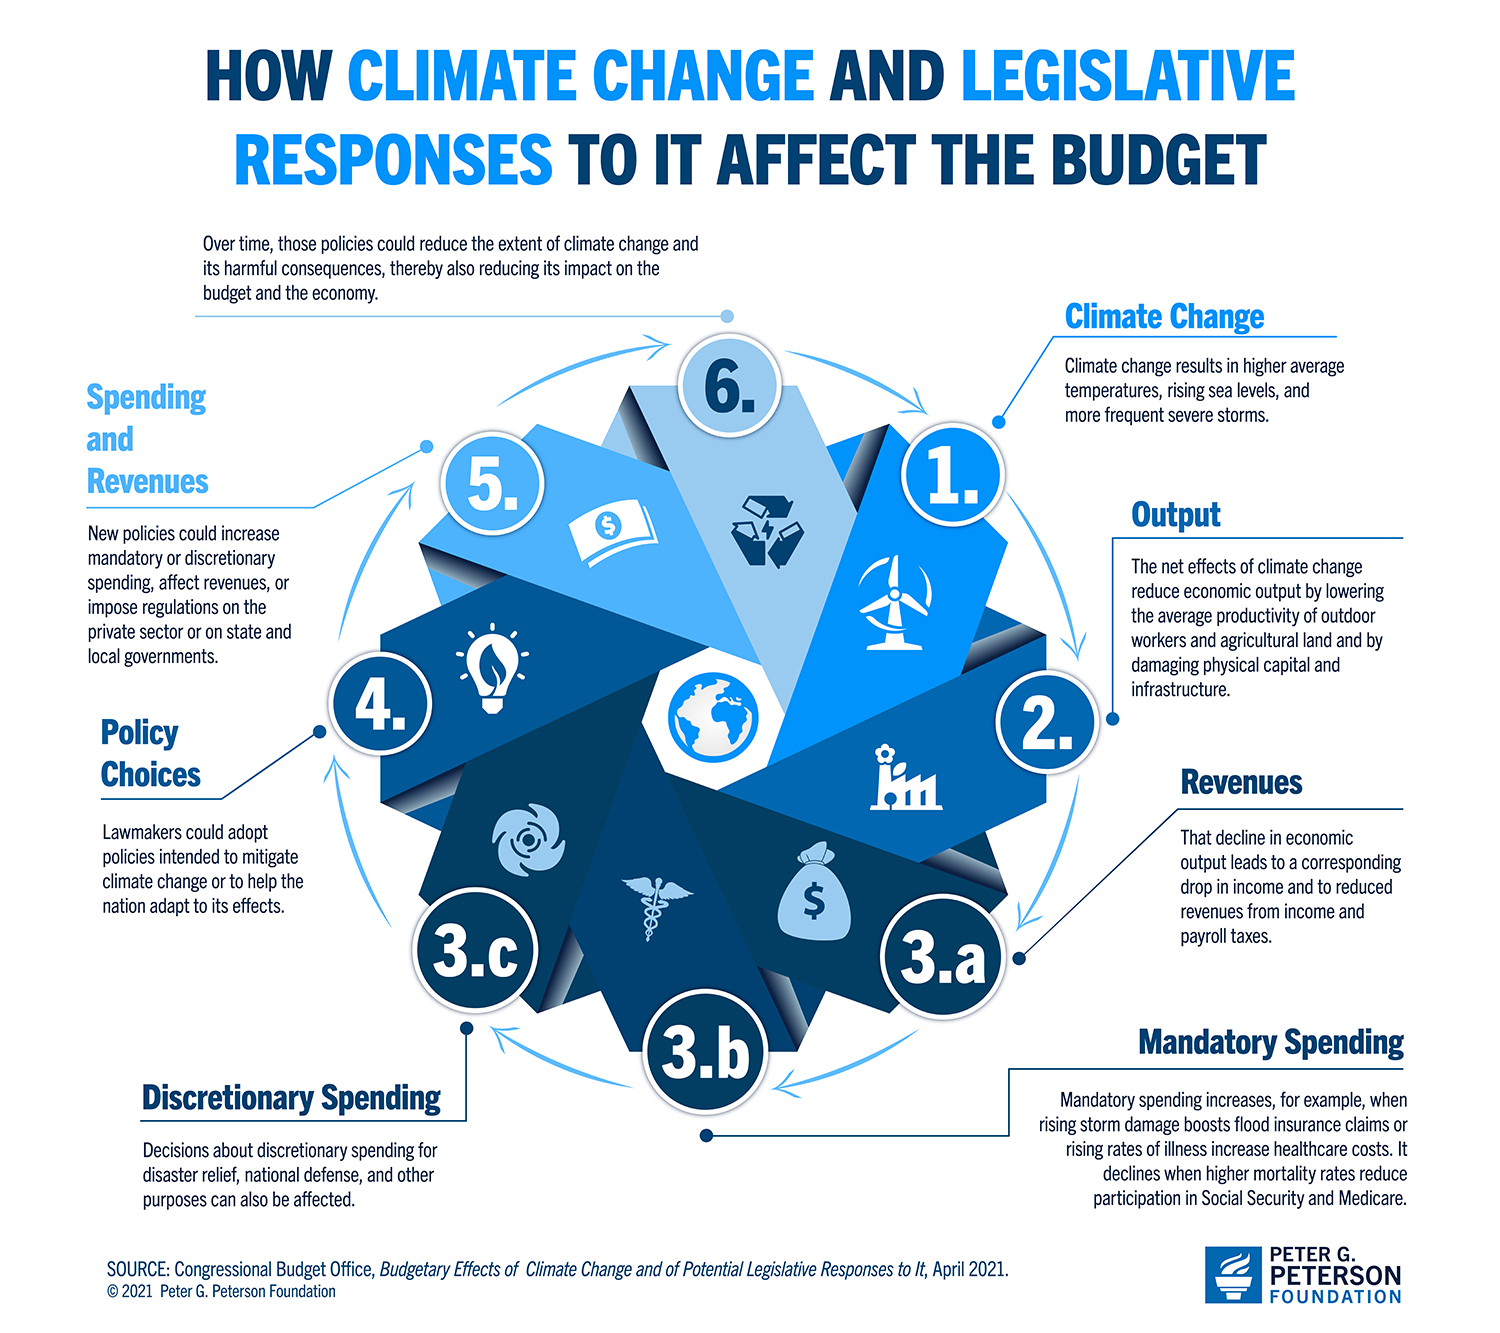 How Climate Change and legislative responses to it affect the budget